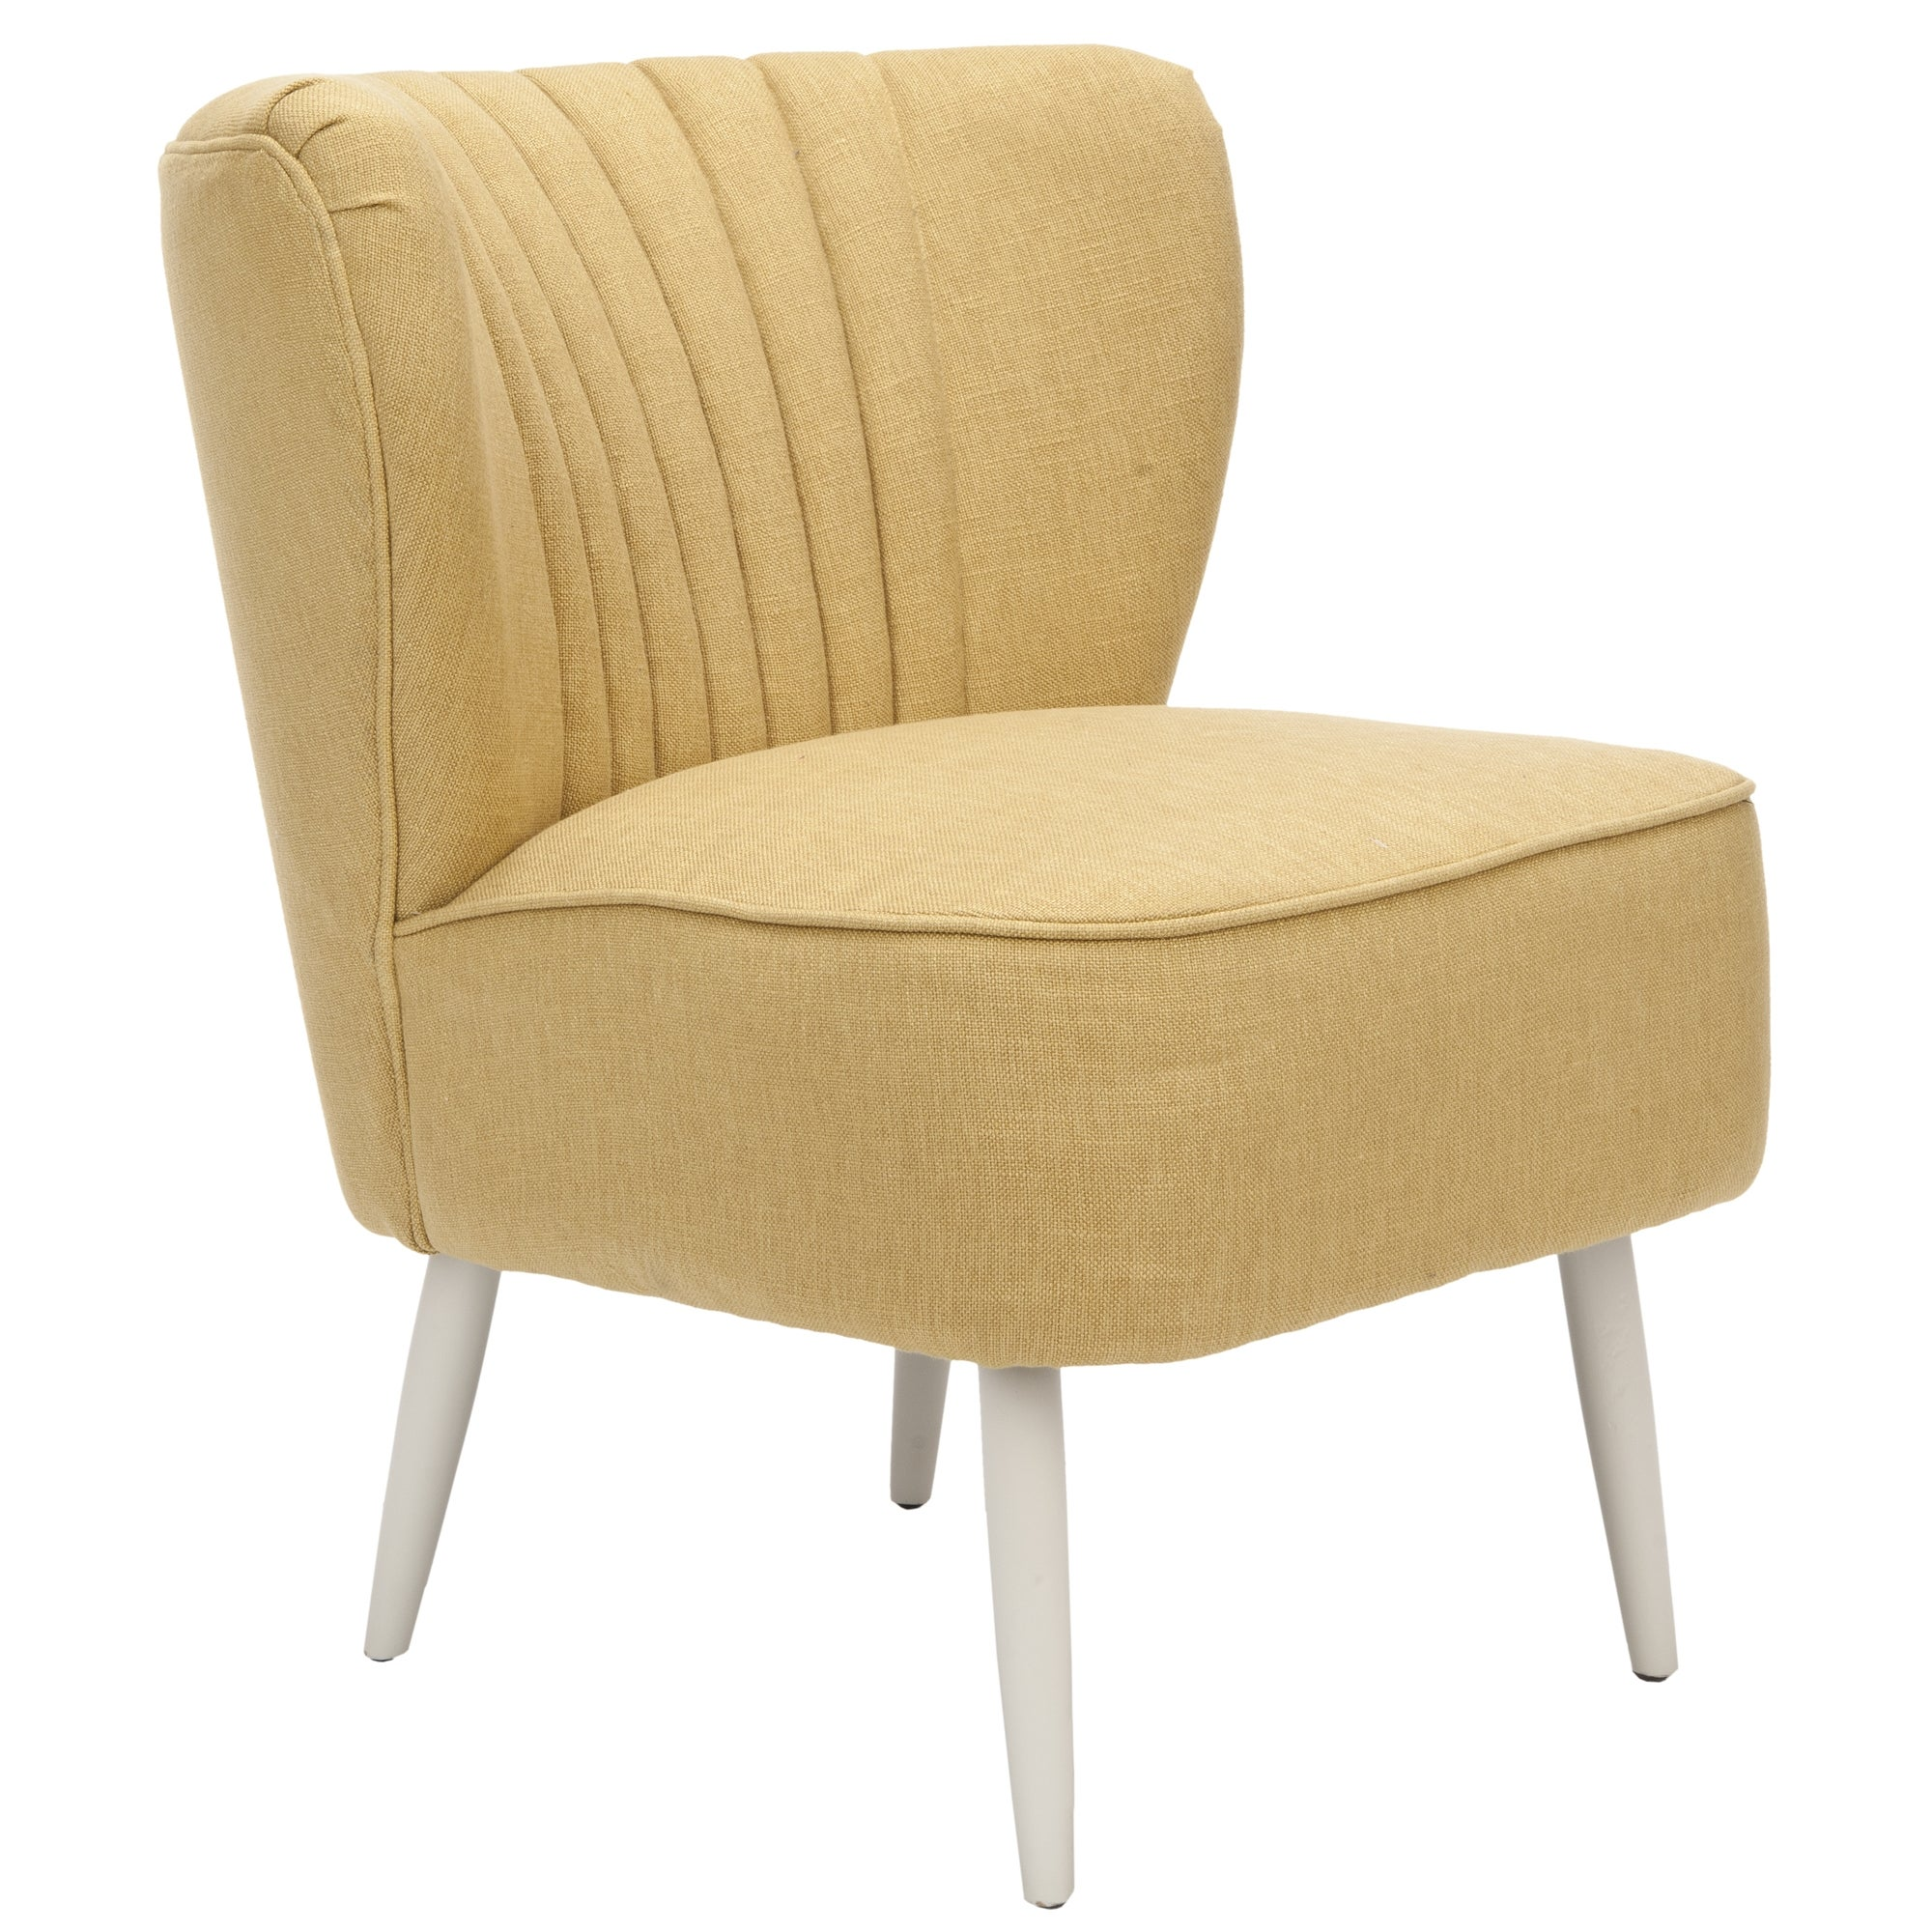 Shop safavieh mid century light gold accent chair free shipping today overstock com 6387521